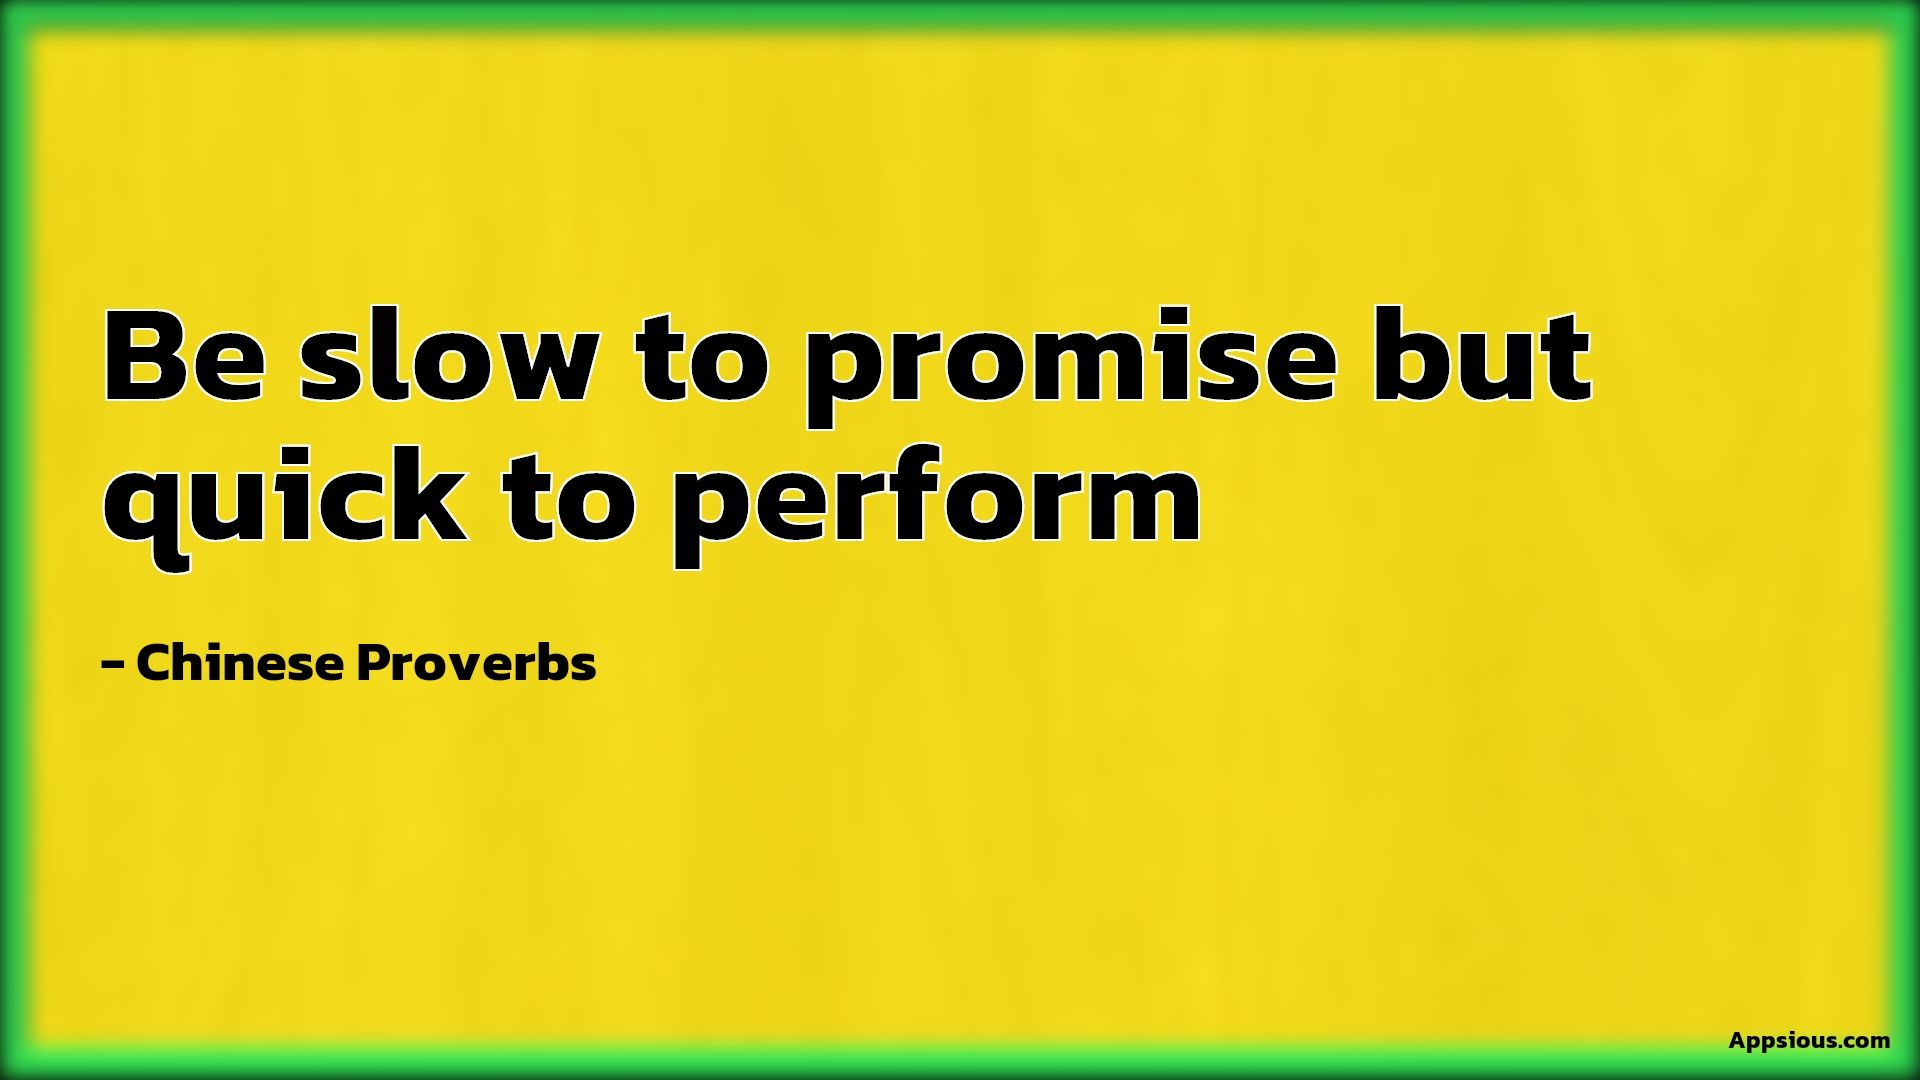 Be slow to promise but quick to perform